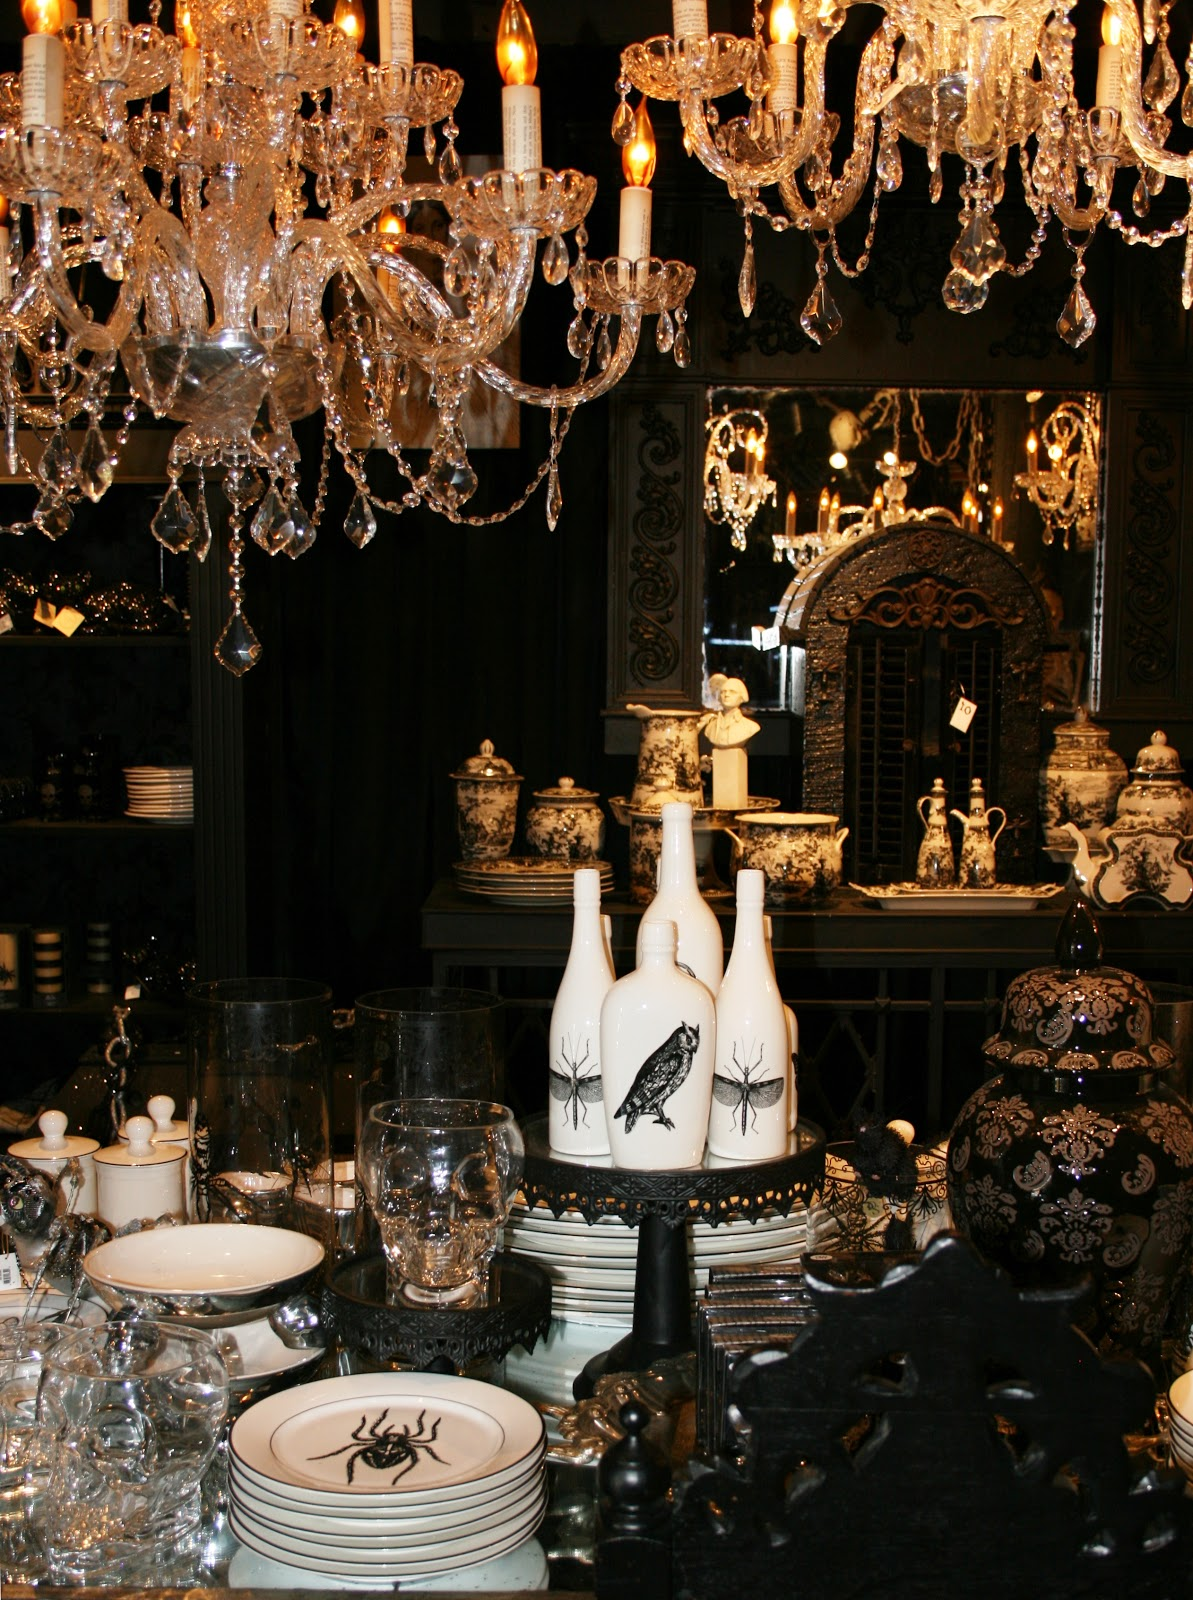 ciao newport beach halloween display at roger 39 s gardens. Black Bedroom Furniture Sets. Home Design Ideas